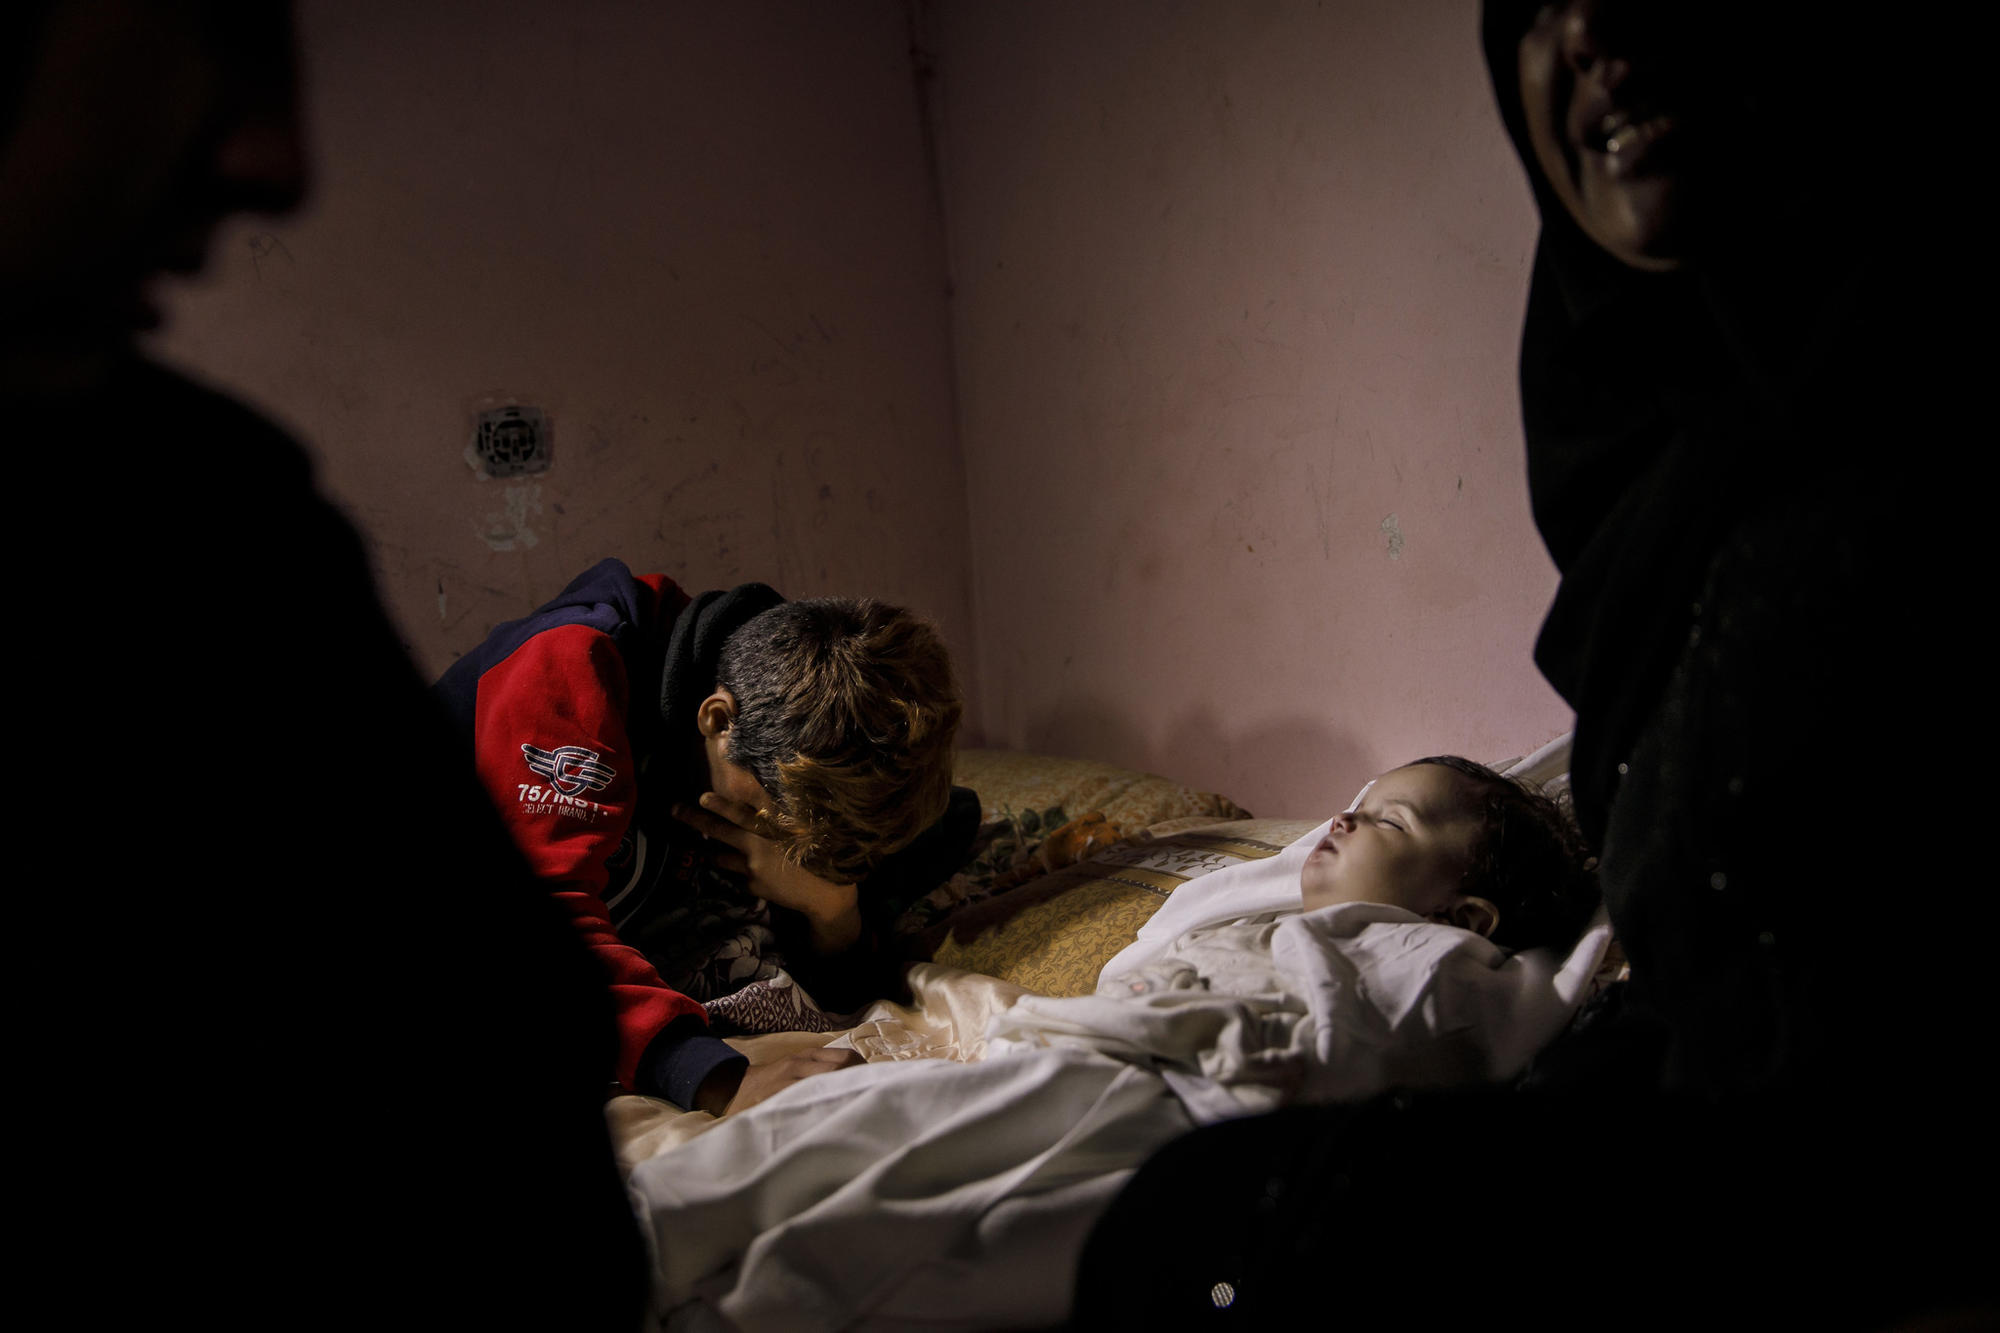 GAZA CITY, GAZA -- TUESDAY, MAY 15, 2018: Ammar, 12, grieves for his niece, Laila Anwar Ghandor, 11